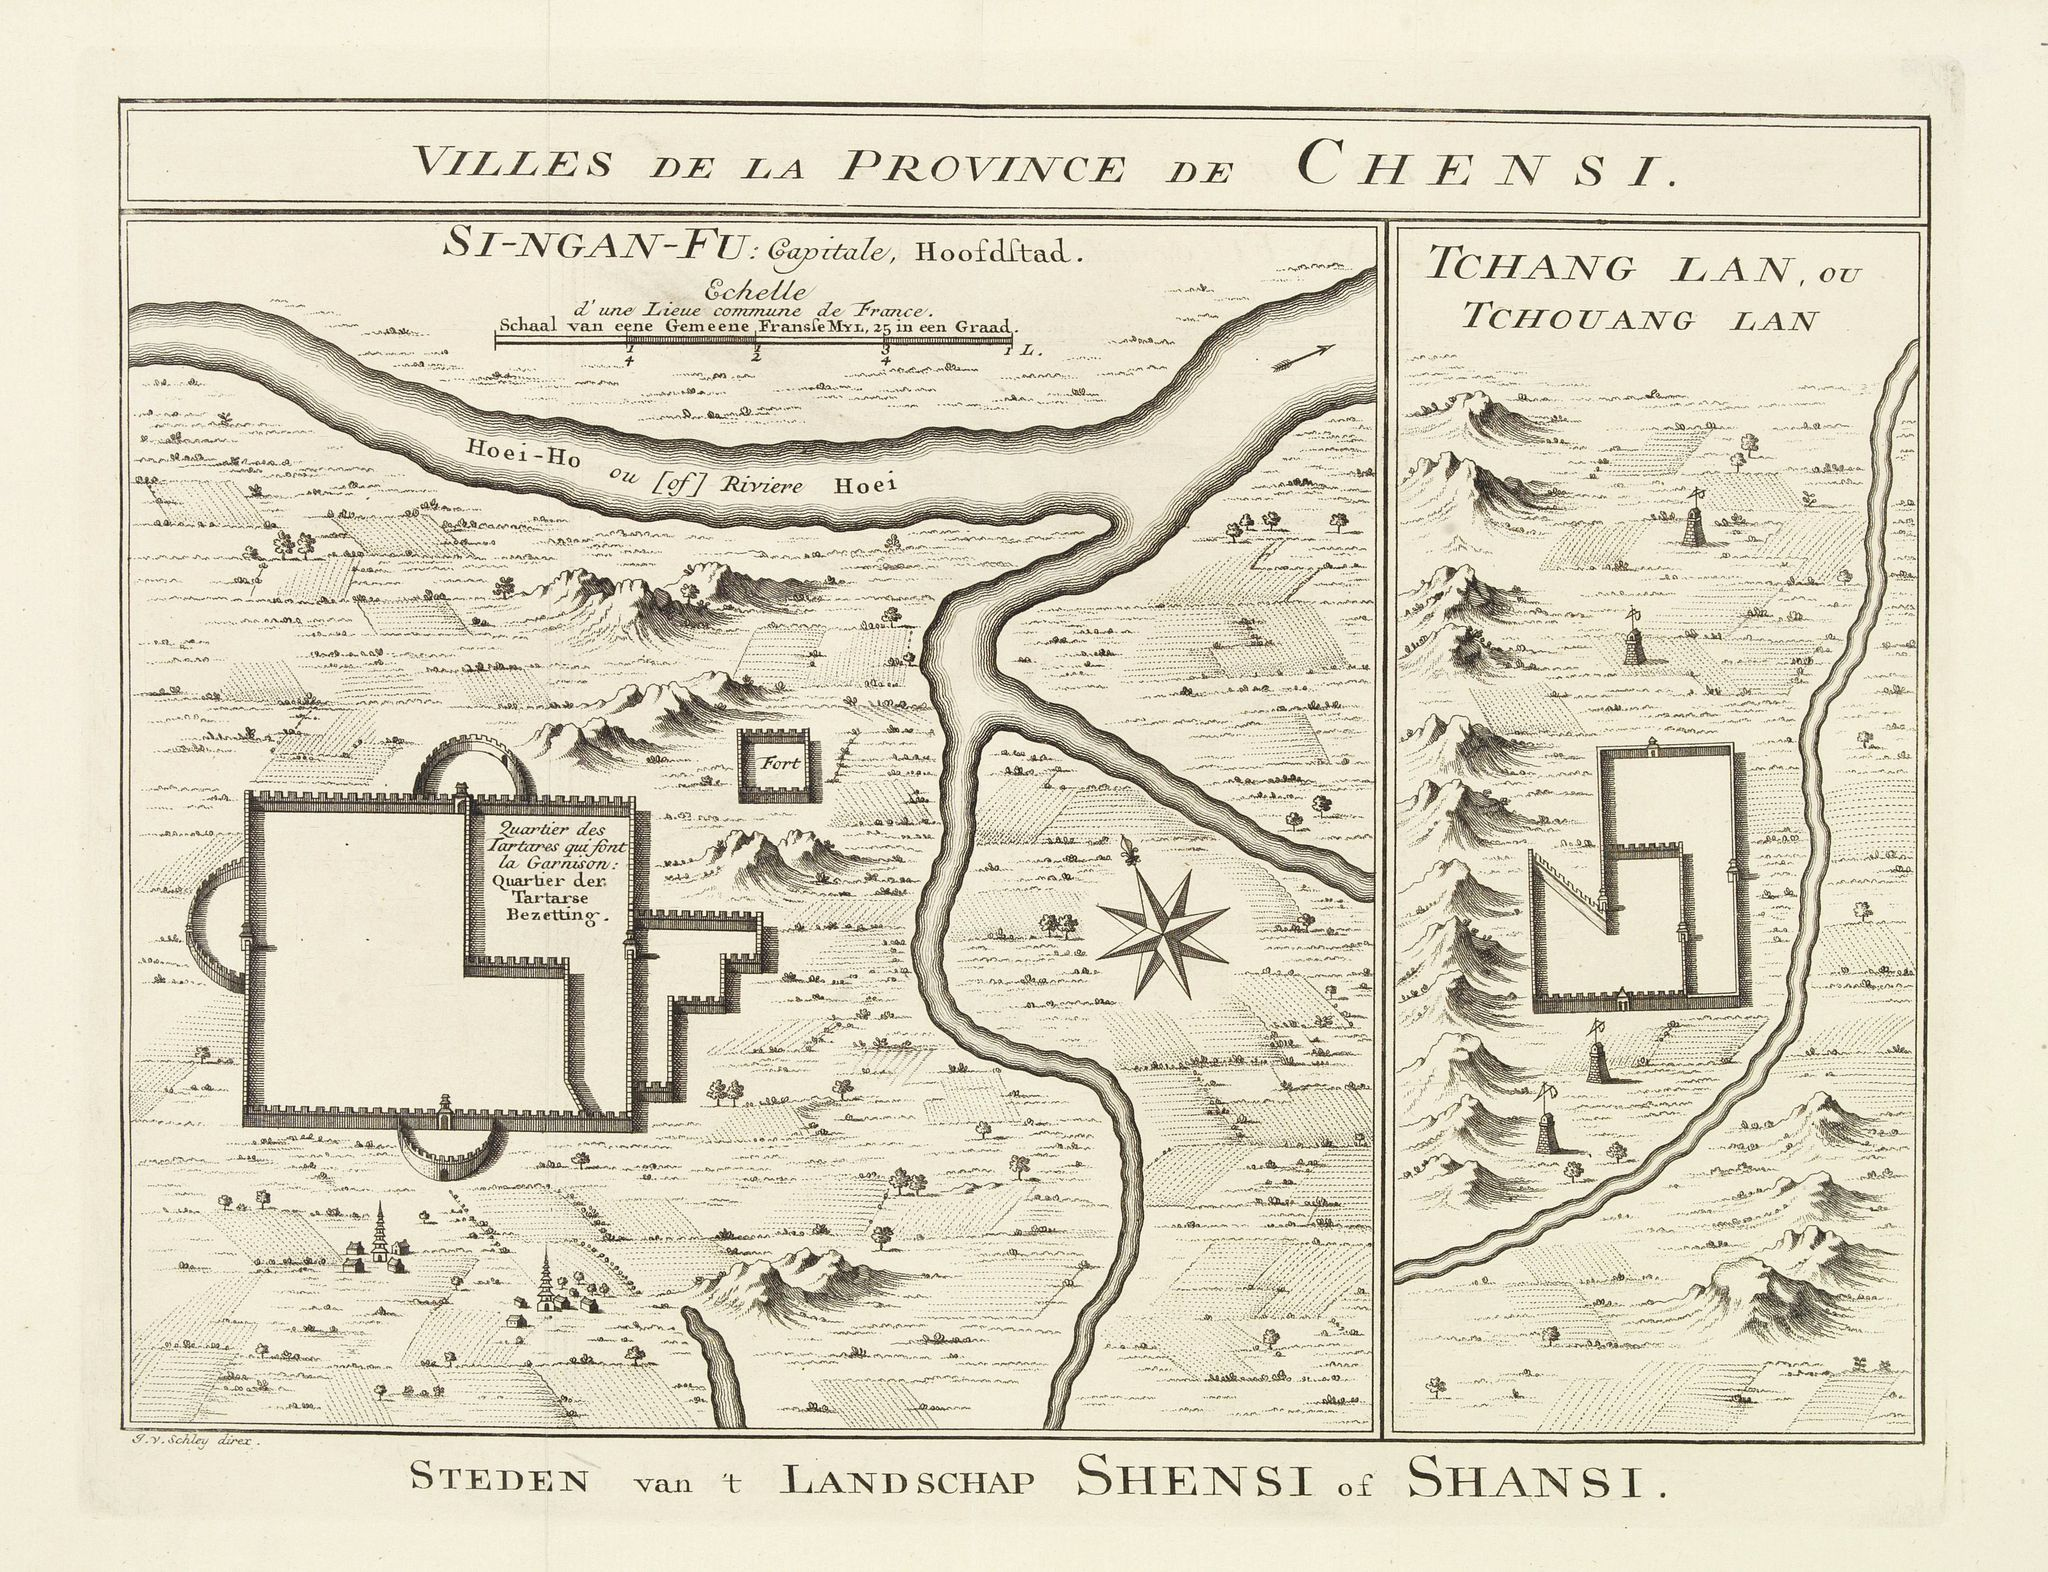 BELLIN, J.N.,  Villes de la Province de Chensi. Steden van't Landschap Shensi of Shansi., antique map, old maps